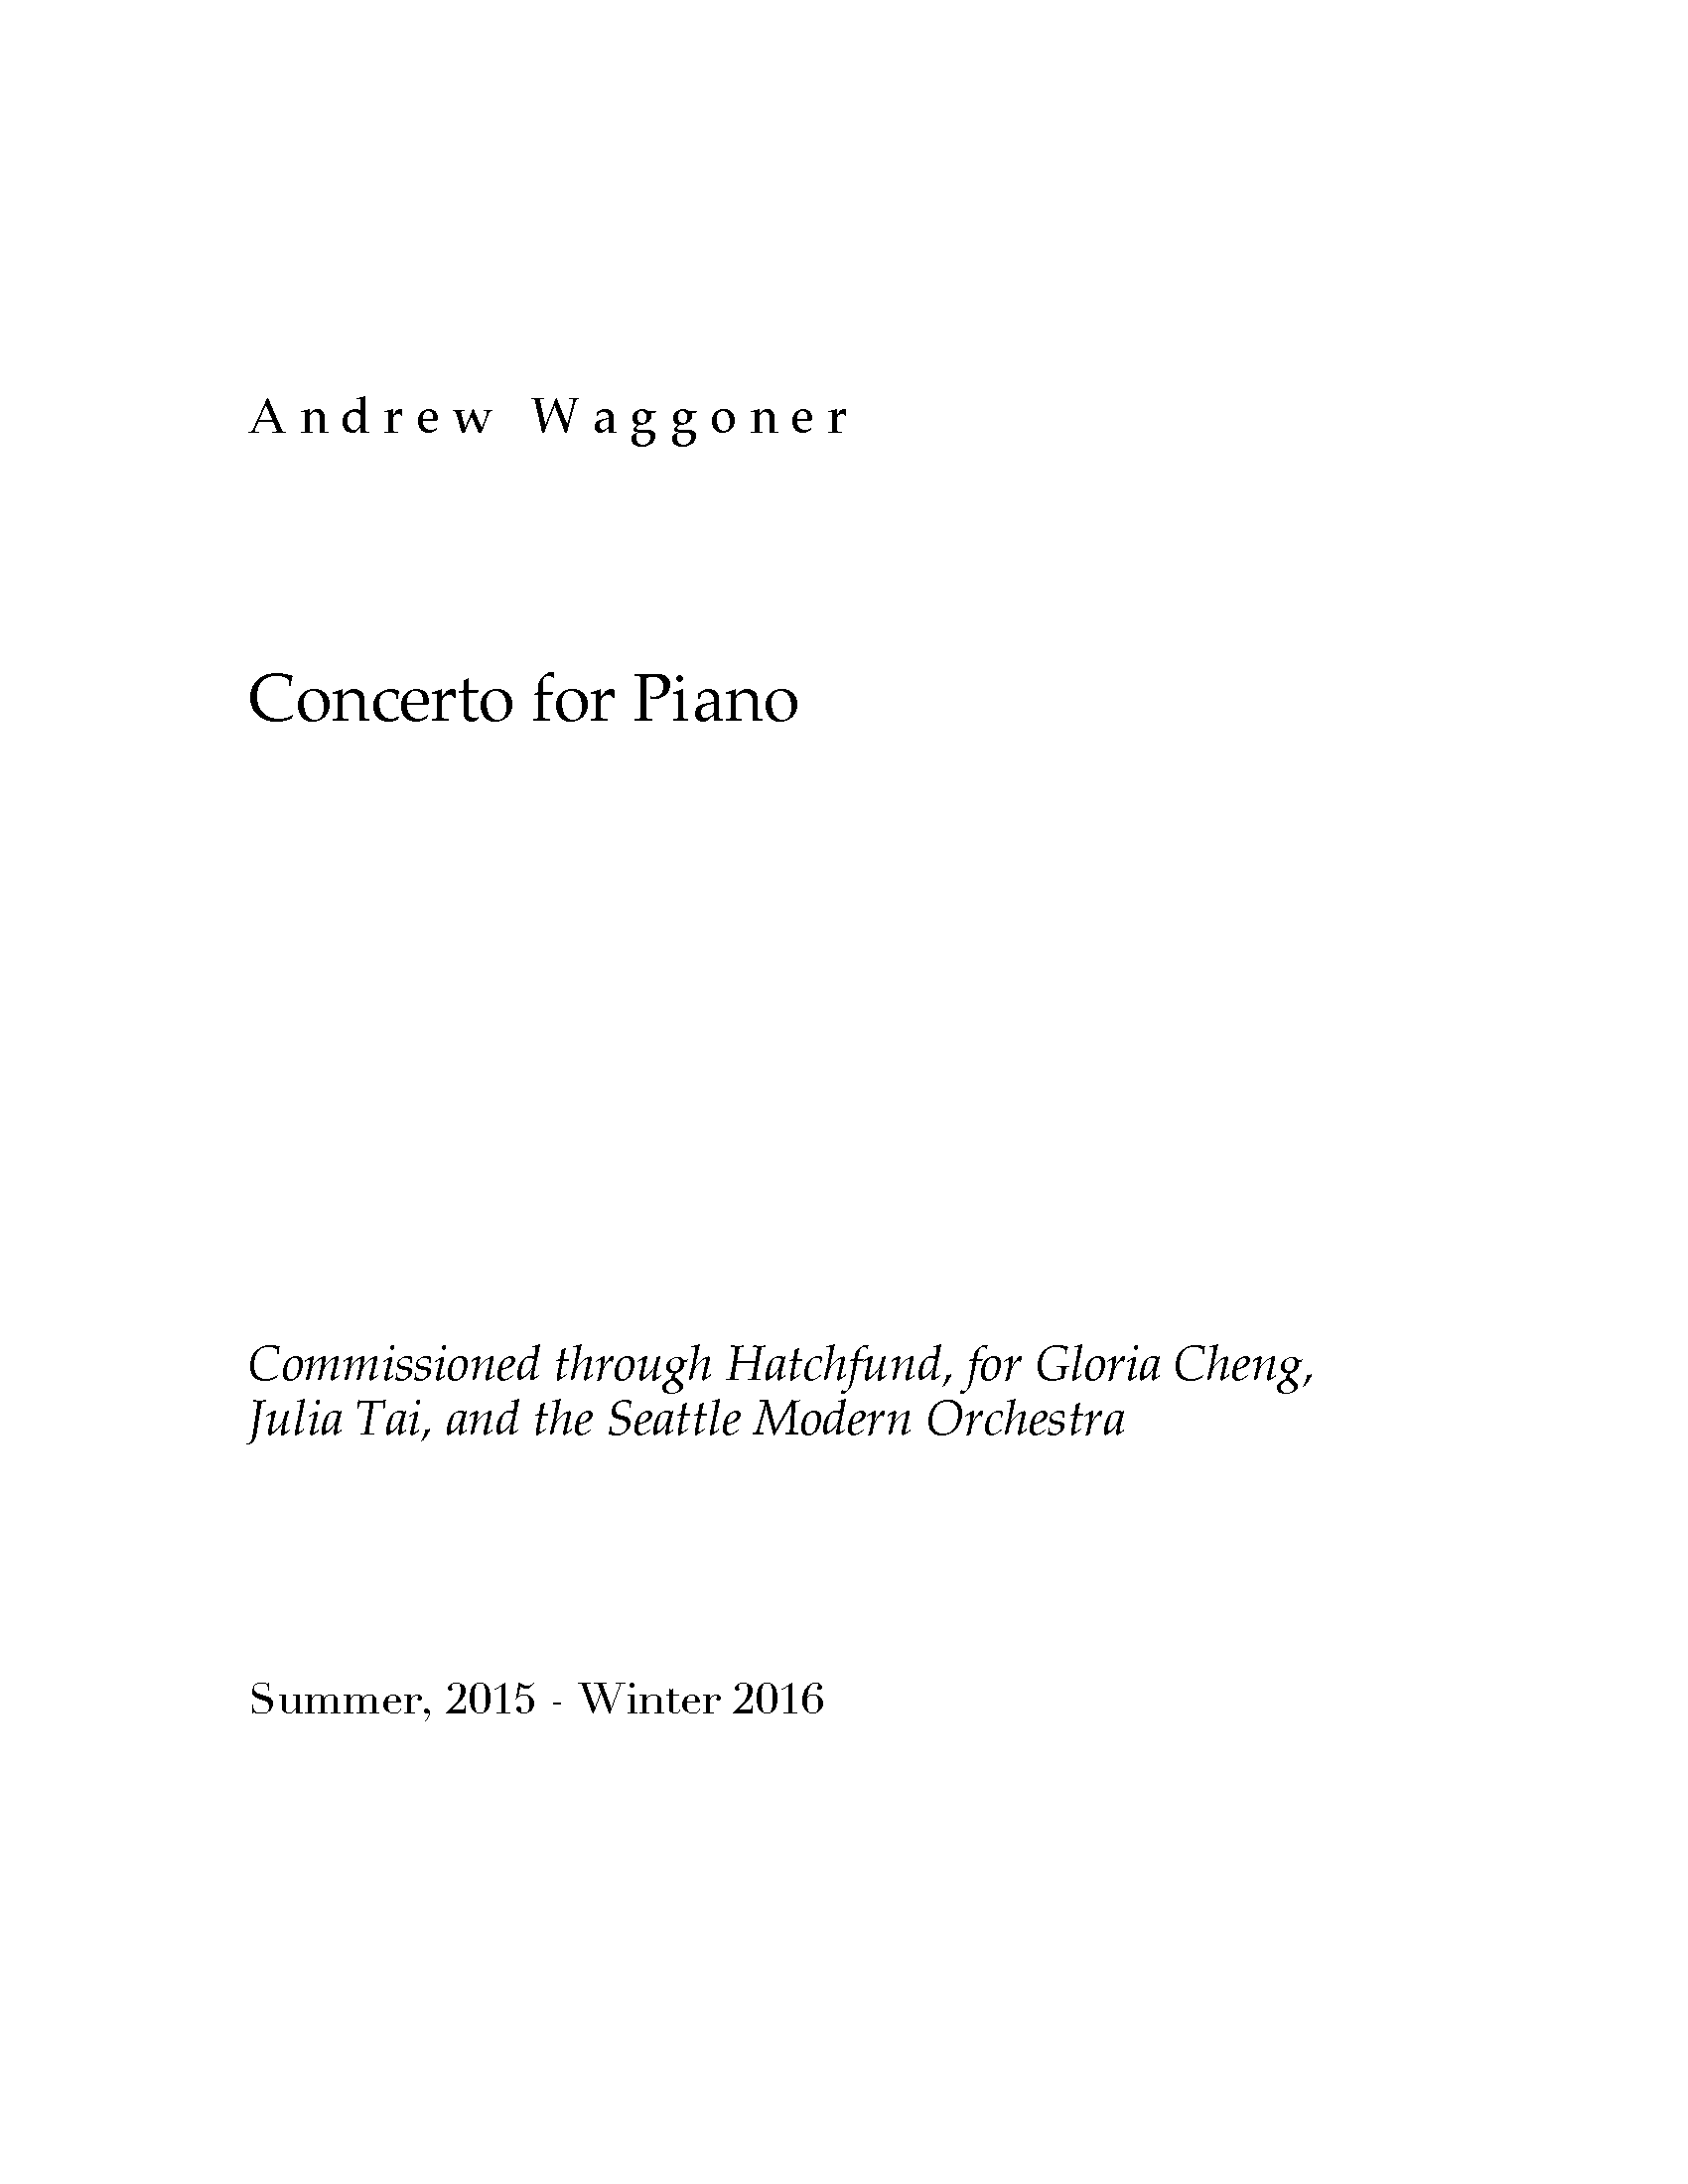 Concerto for Piano for Piano & Orchestra